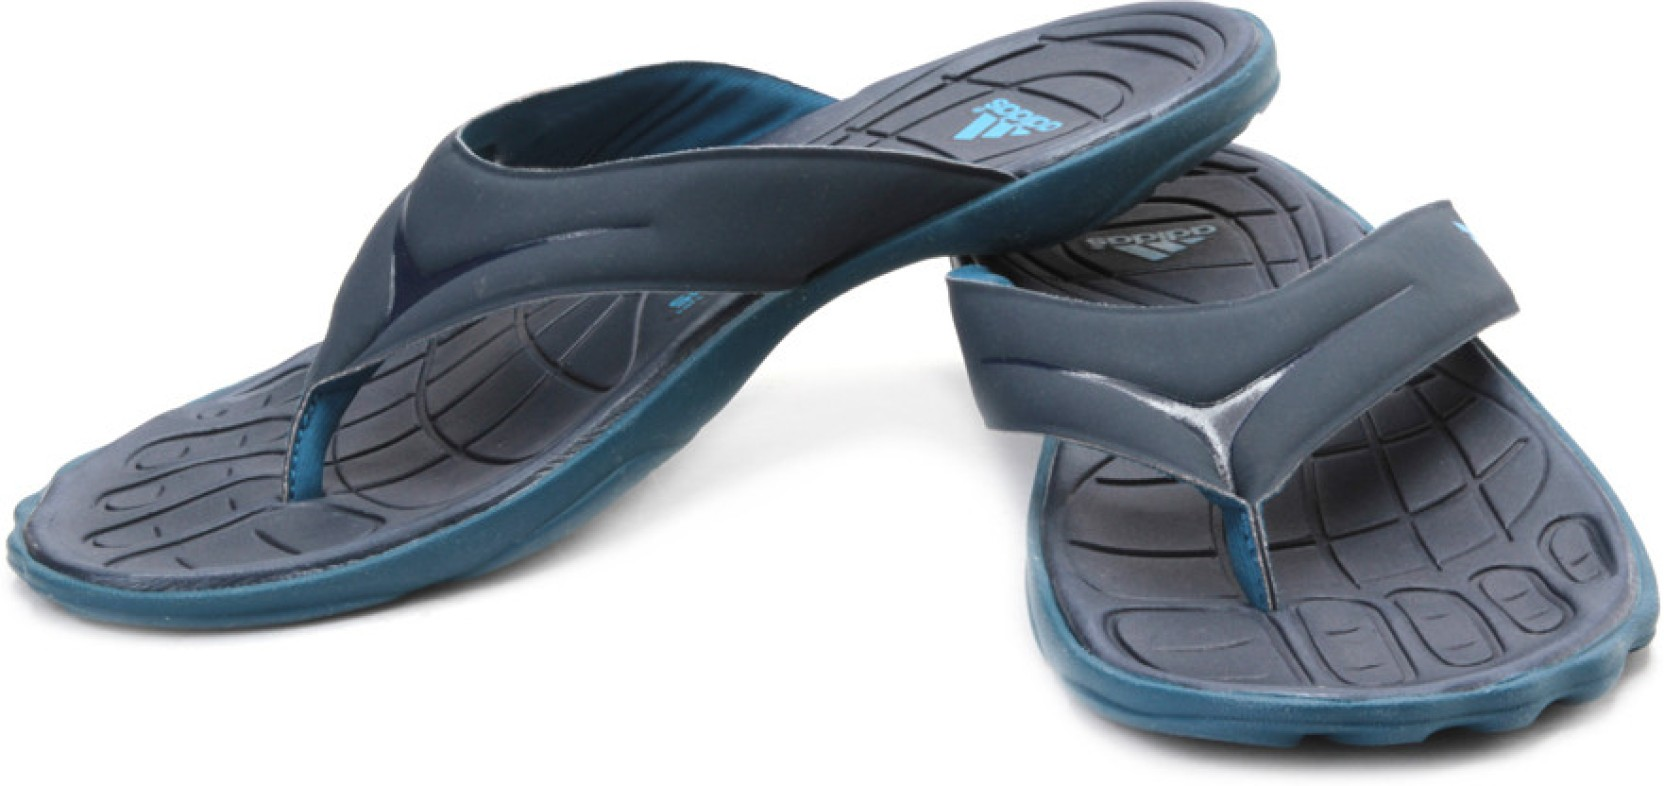 huge discount 42416 8fc47 ADIDAS Adipure Thong Sc M Slippers. Share